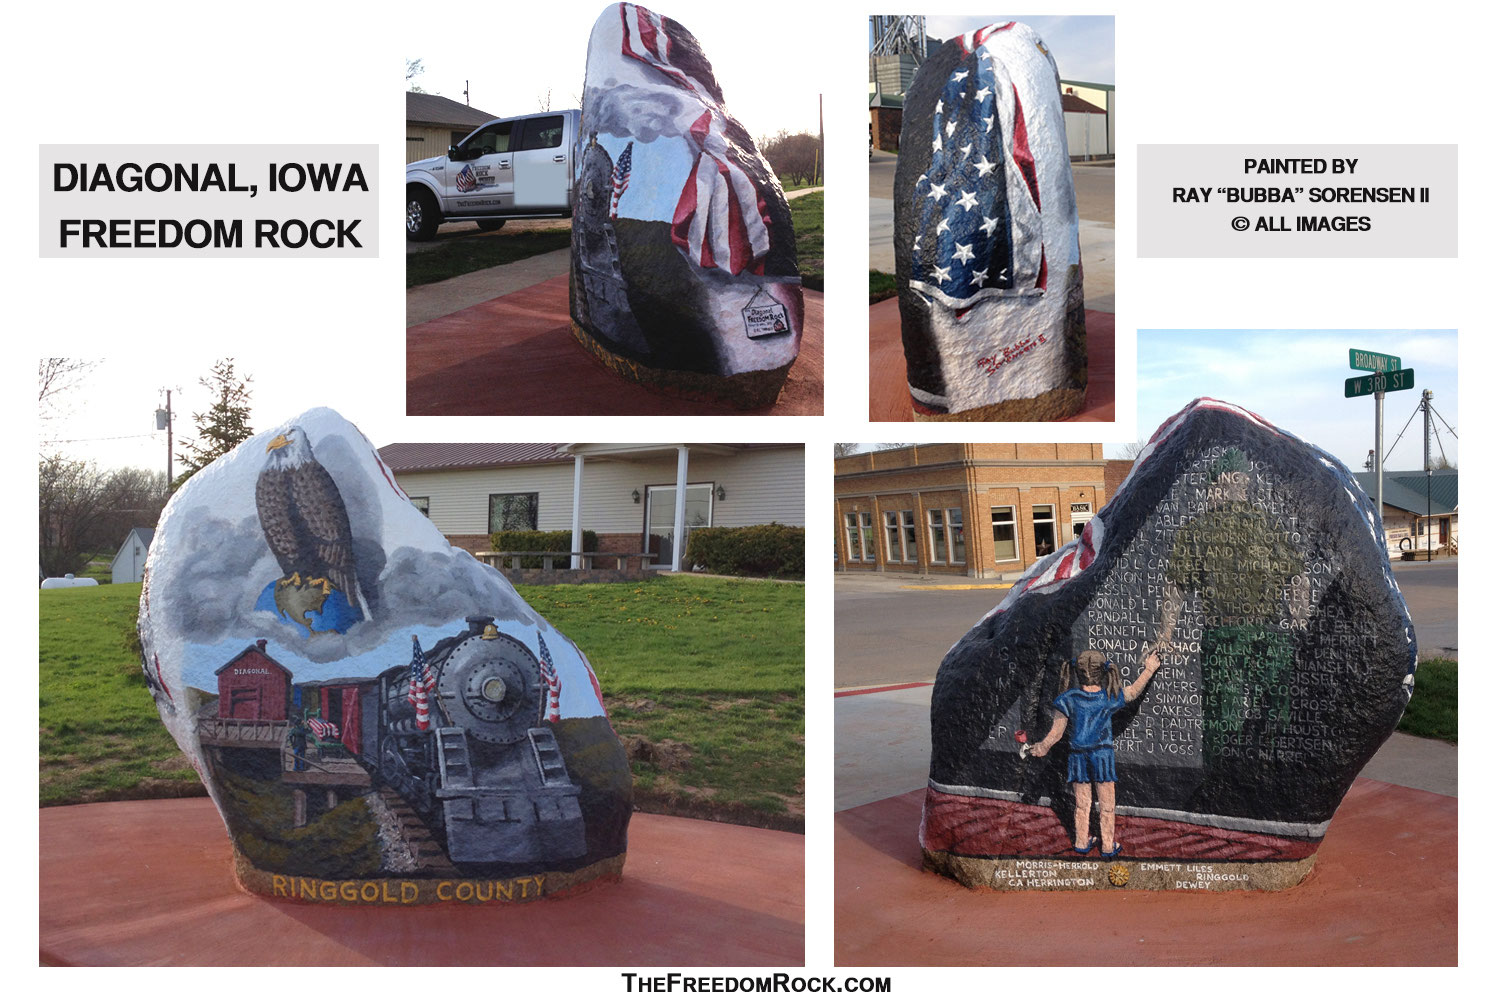 Iowa Fr Tour The Freedom Rock Rock is the son of south town's most infamous fighter/crime boss geese howard. iowa fr tour the freedom rock